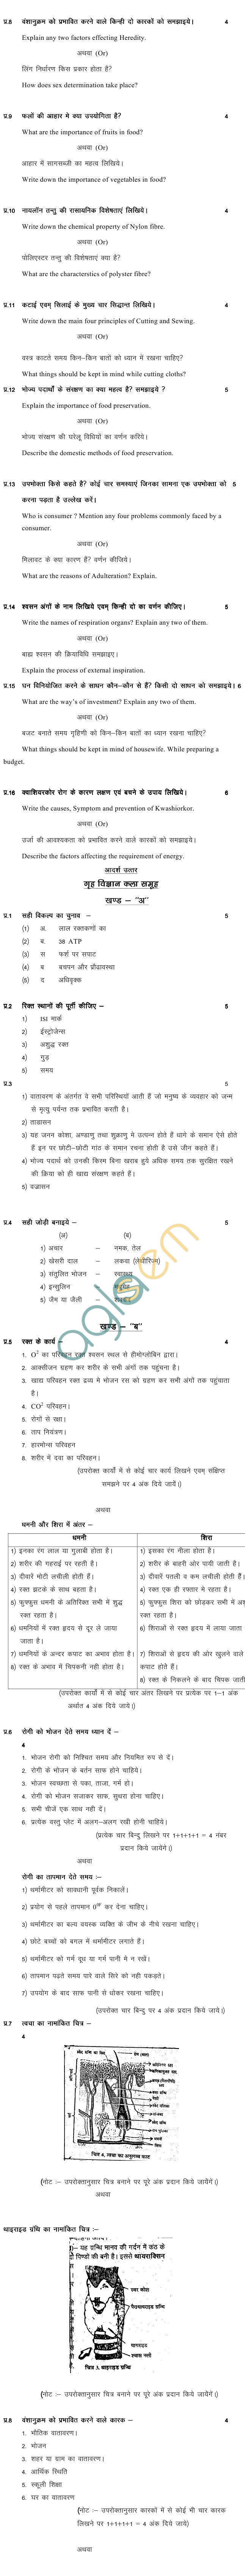 MP Board Class XII Anatomy Phy. and Hygene Model Questions & Answers - Set 2